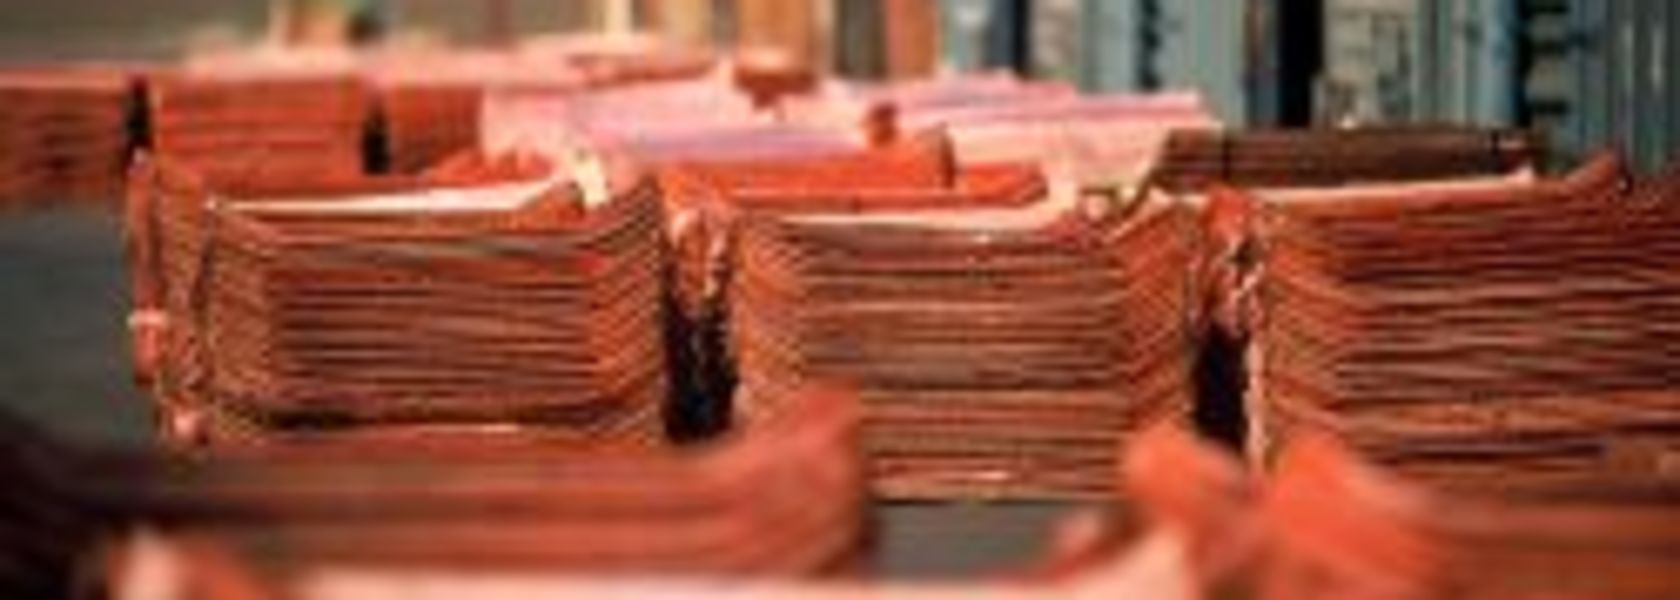 S&P cuts copper, zinc price outlook - Mining Journal